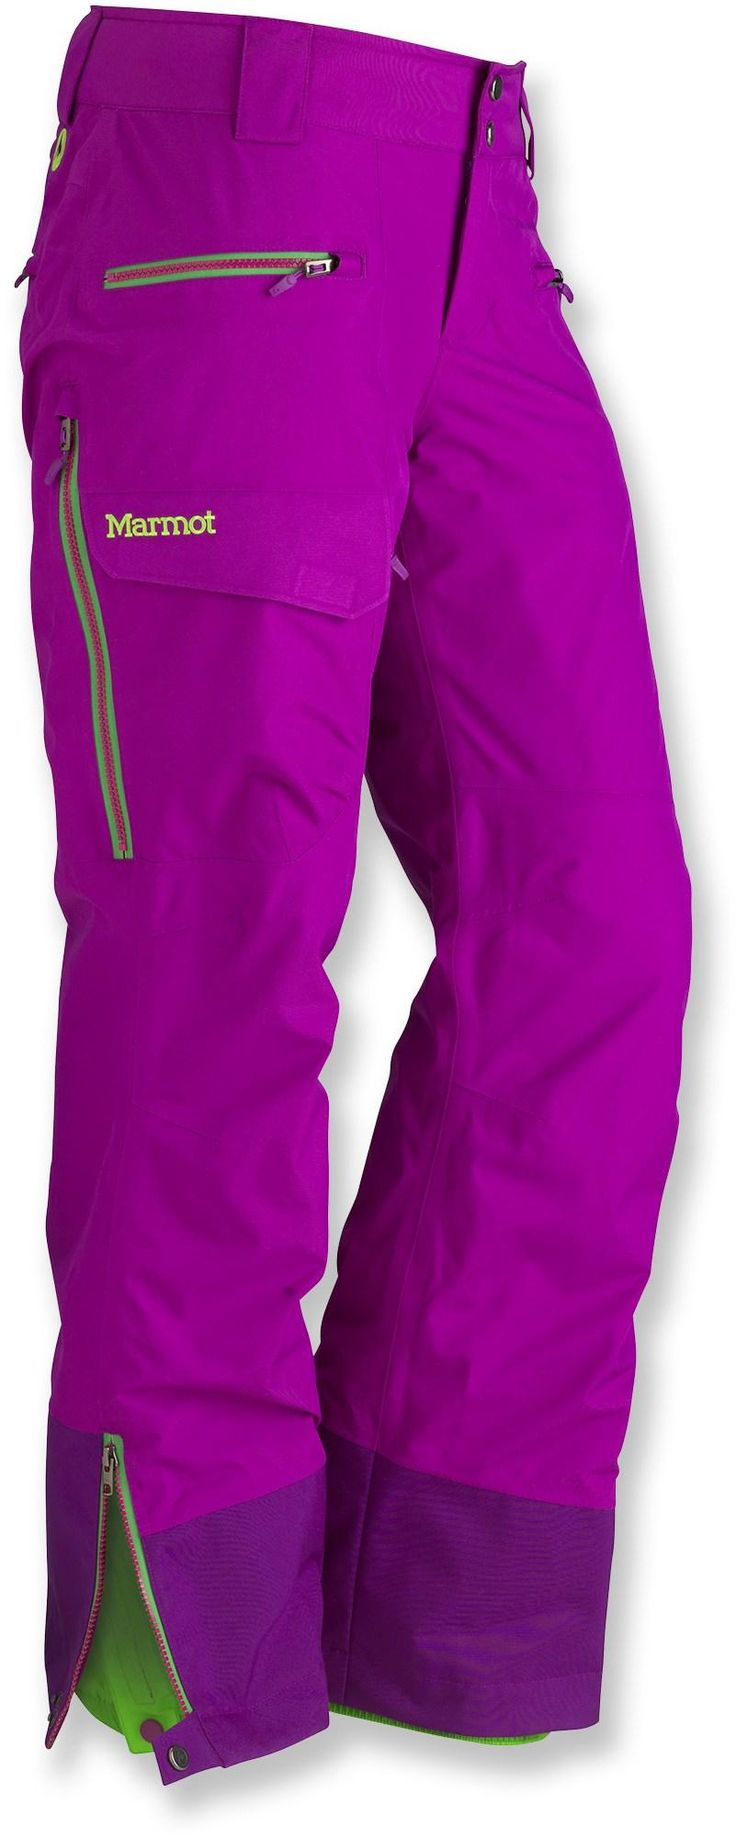 Marmot Freerider Insulated Pants - Women's. I don't like this color.. I'd take dark burgundy, or black. Marmot is a rad brand.